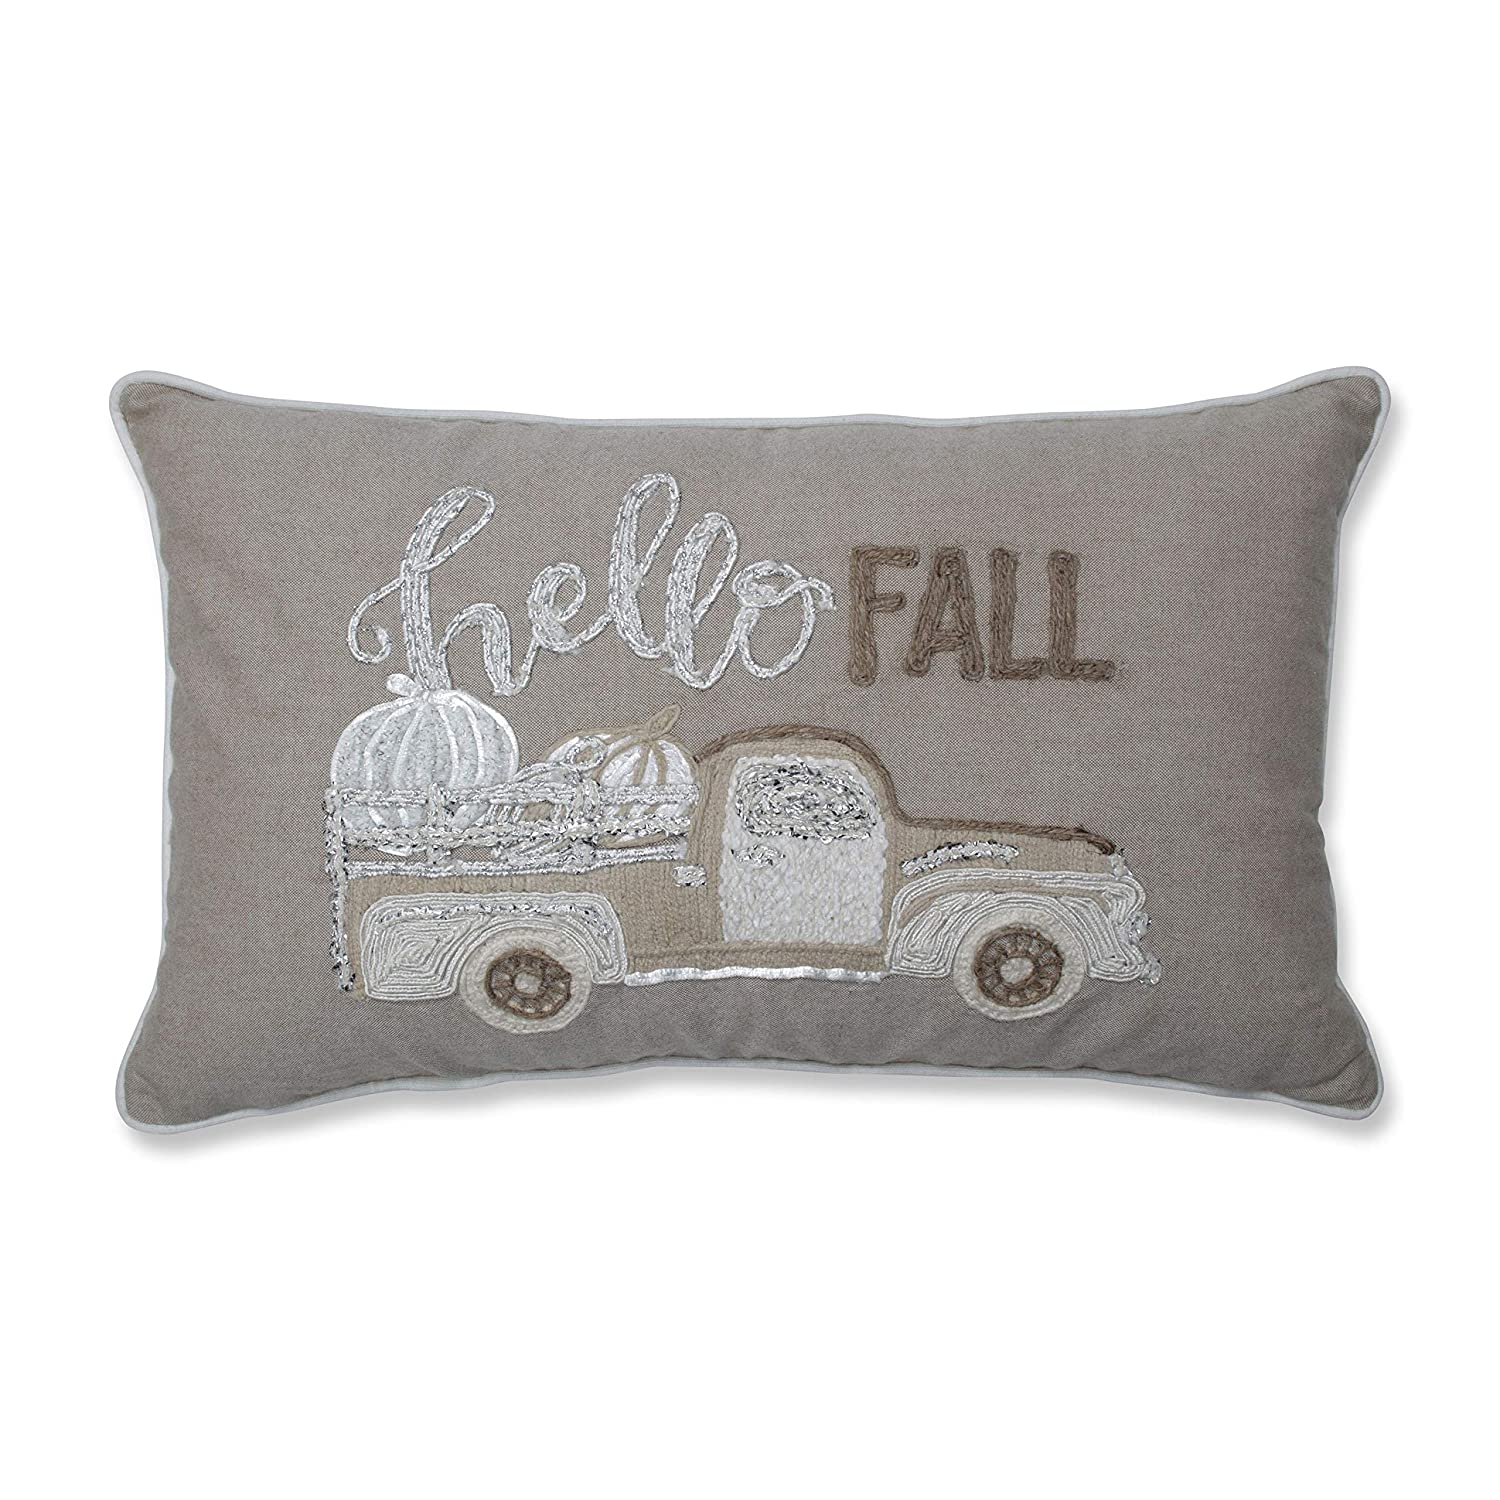 D Red Pillow Perfect Hello Fall Decorative Appliqued Lumbar Pillow Natural//Off White Decorative Pillow 18.5 in L X 11.5 in W X 5 in